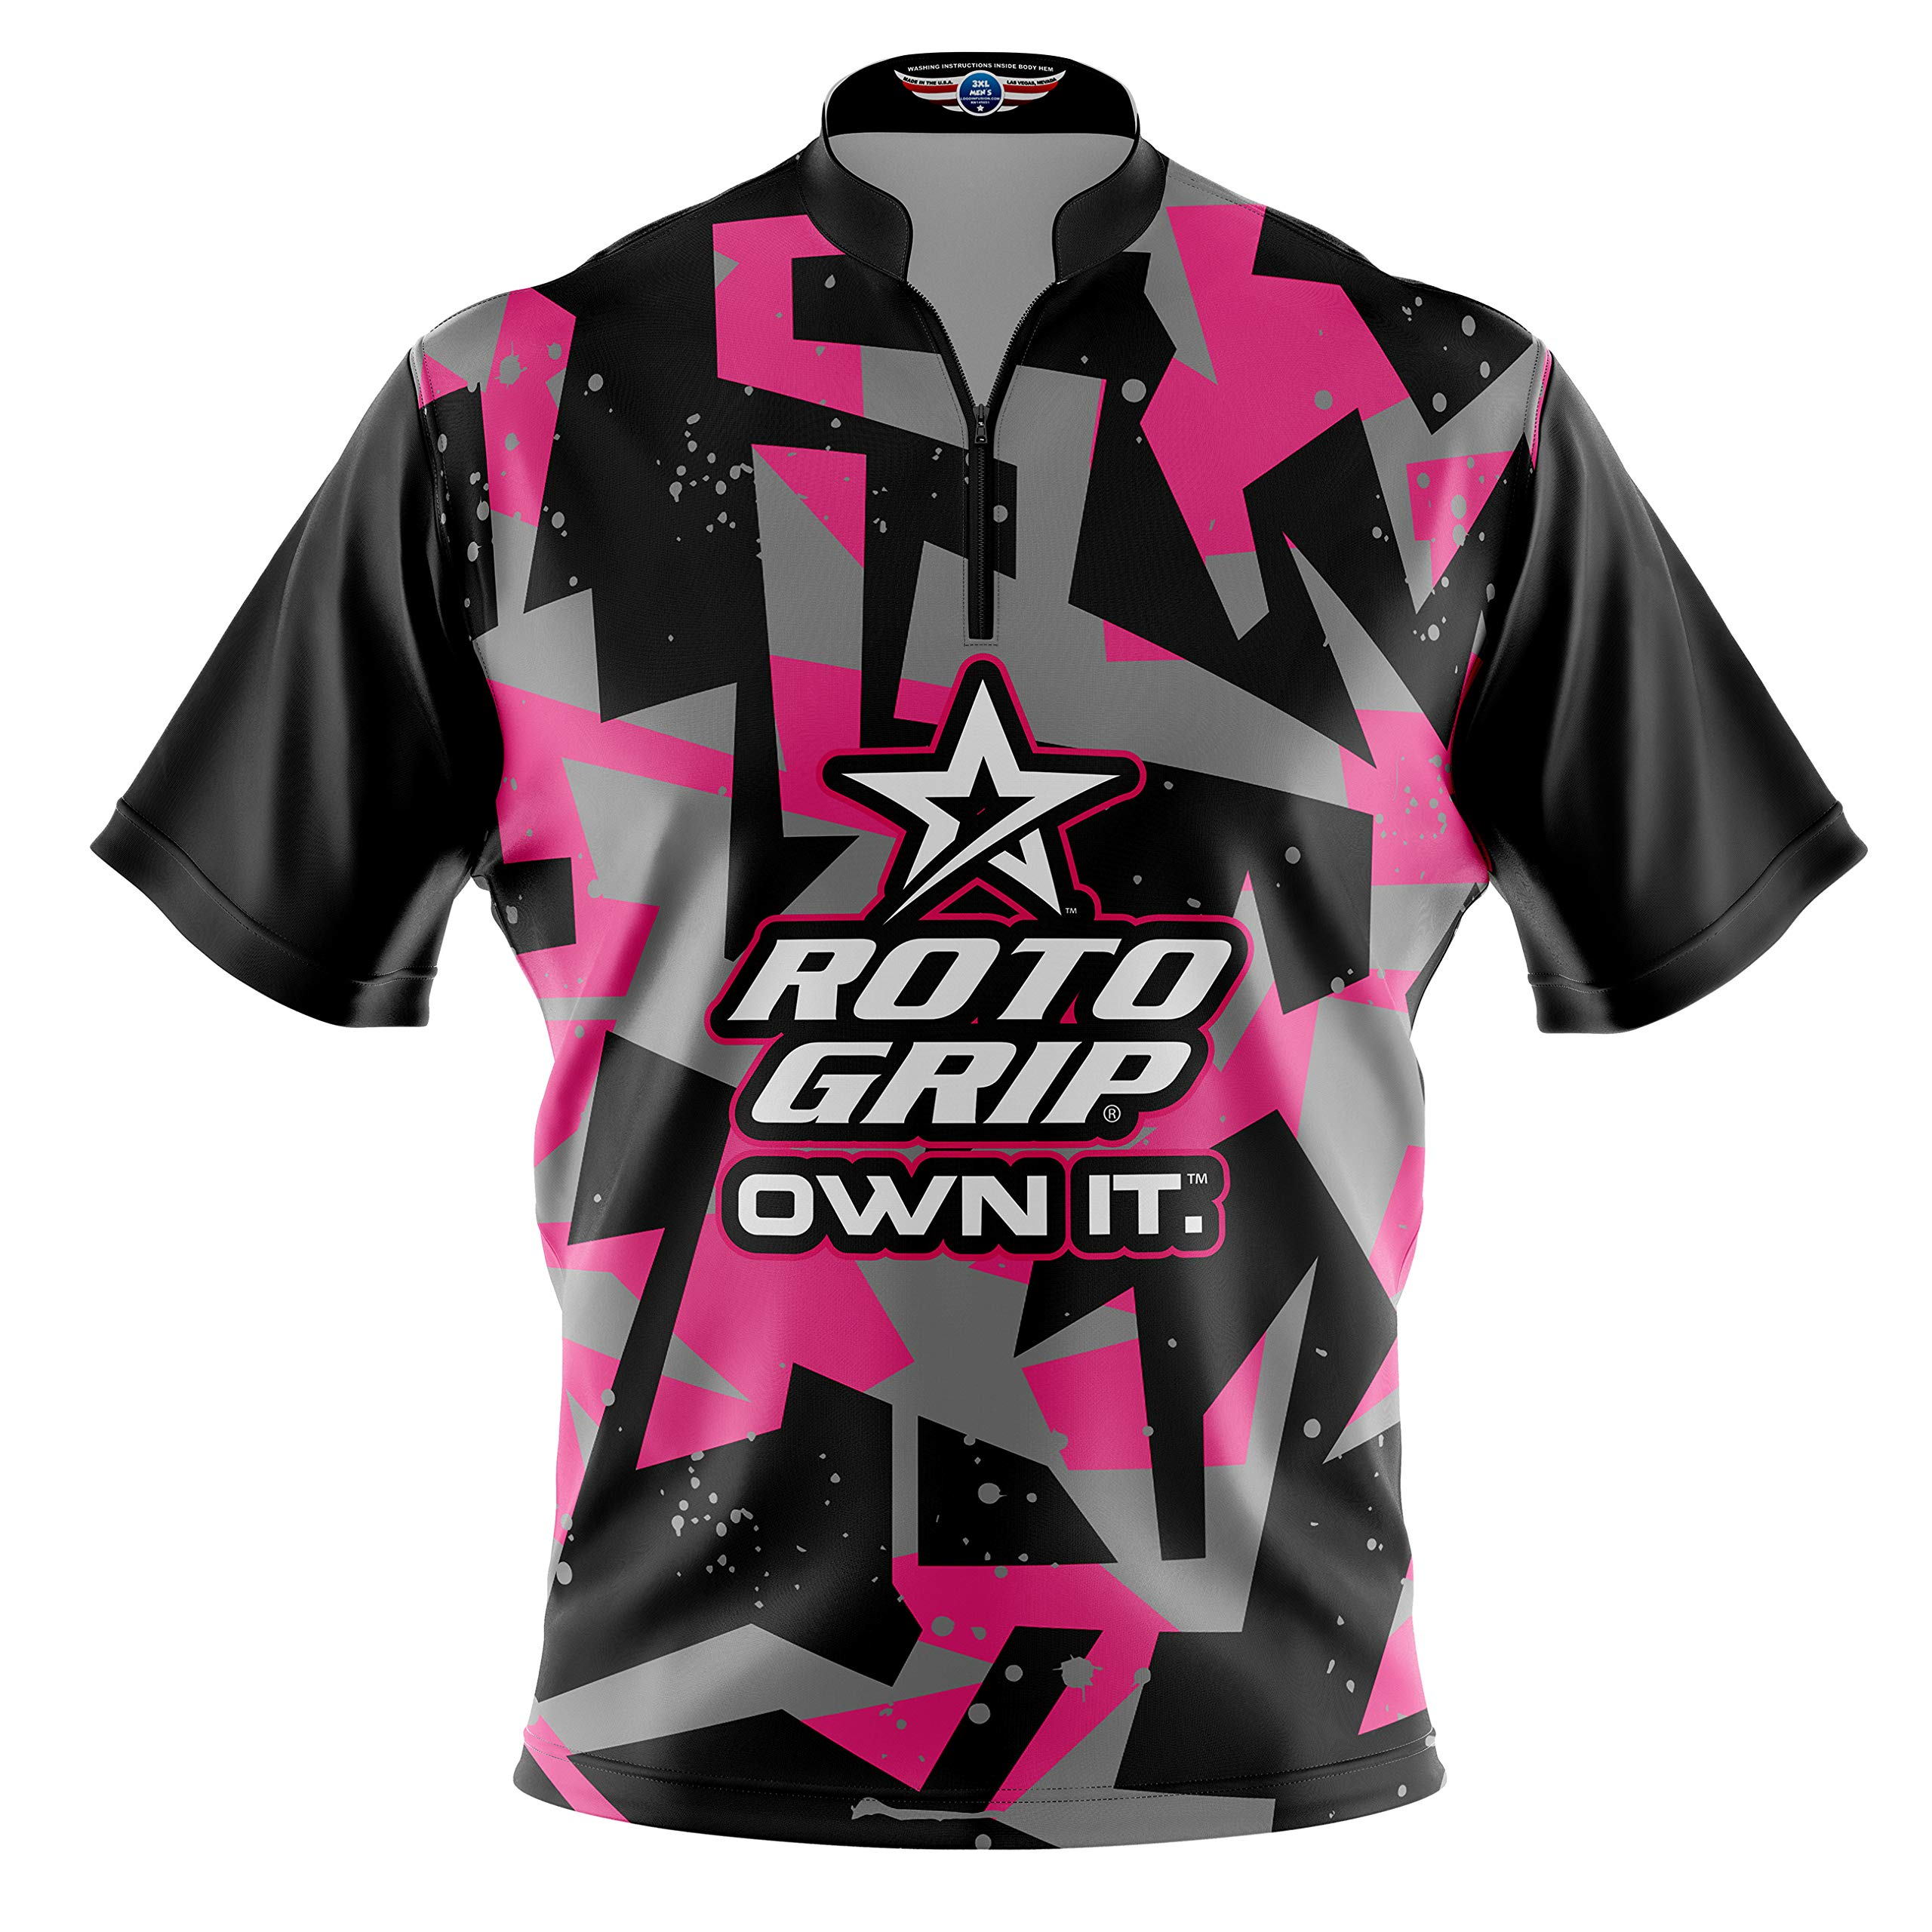 Logo Infusion Bowling Dye-Sublimated Jersey (Sash Collar) - Roto Grip Style 0362 - Sizes S-3XL (L) Pink by Logo Infusion